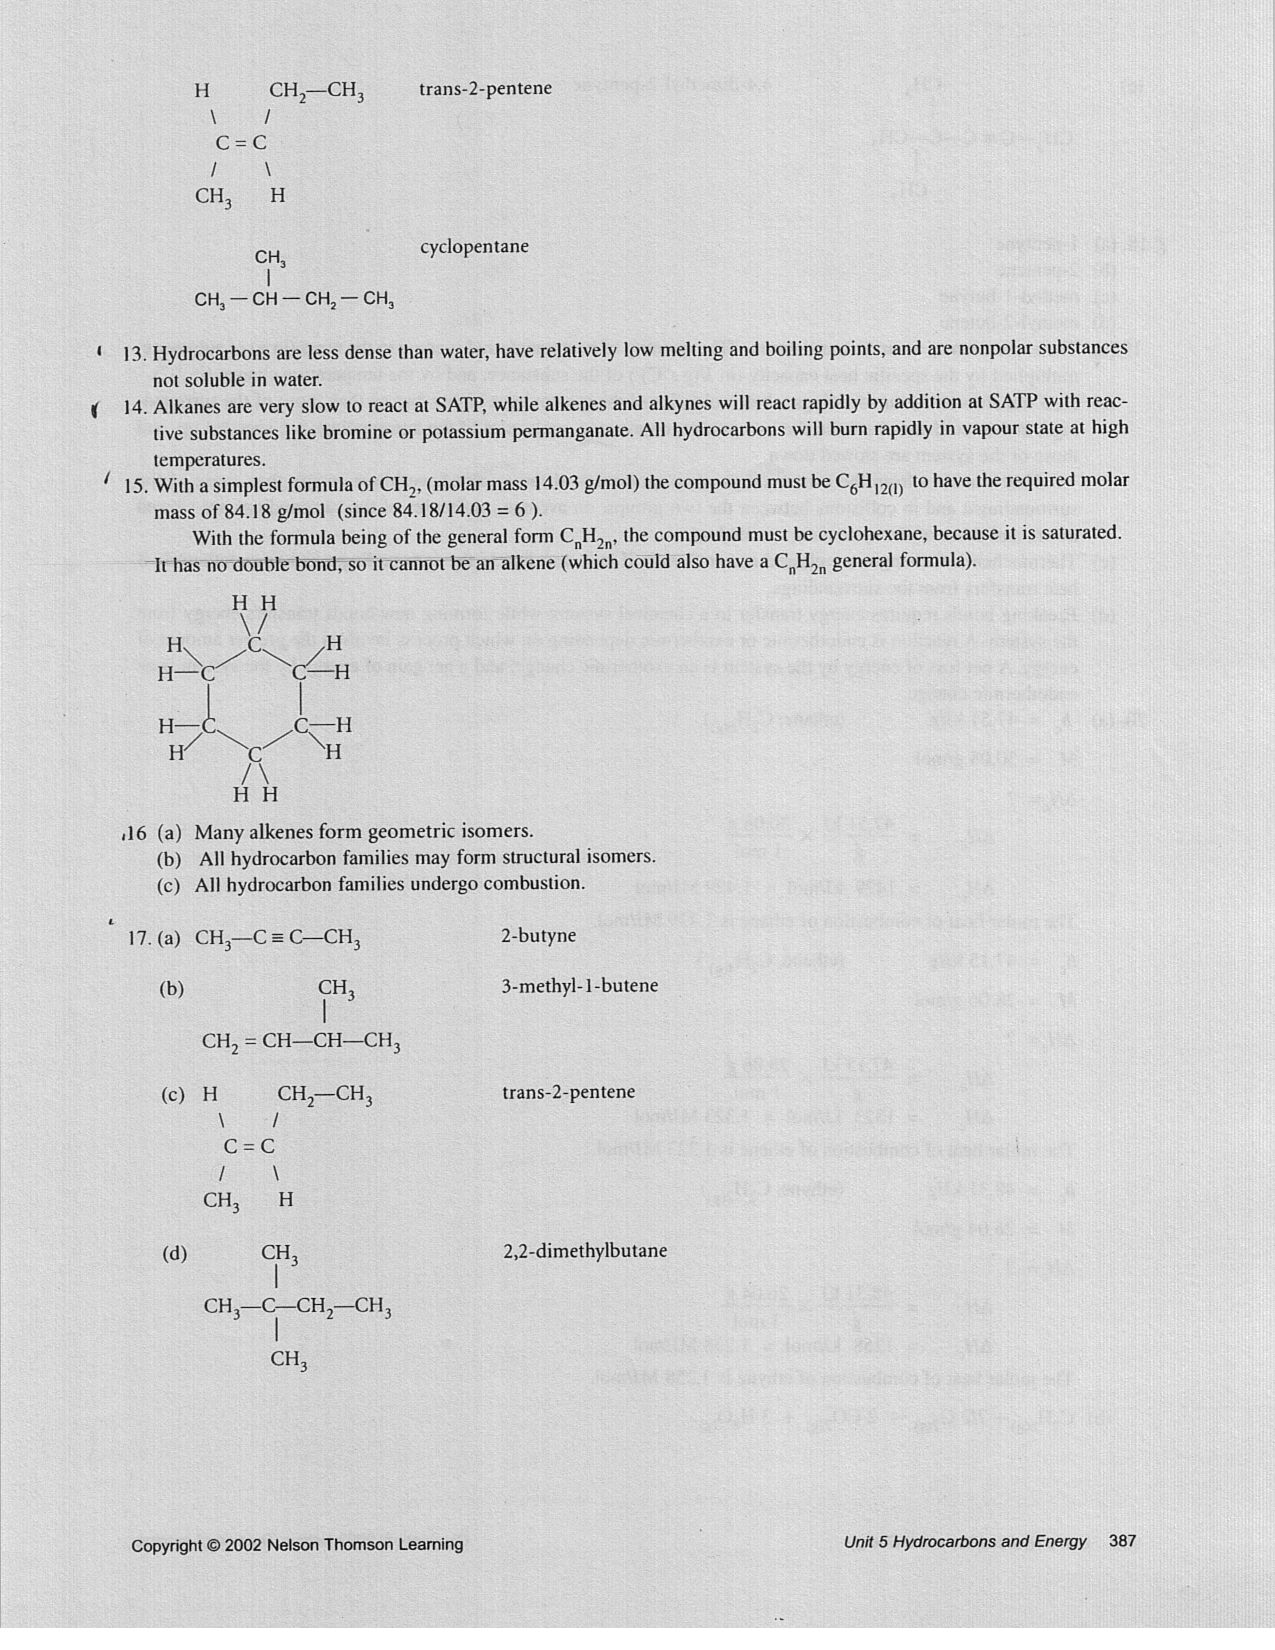 Grade 10 Chemistry Answers